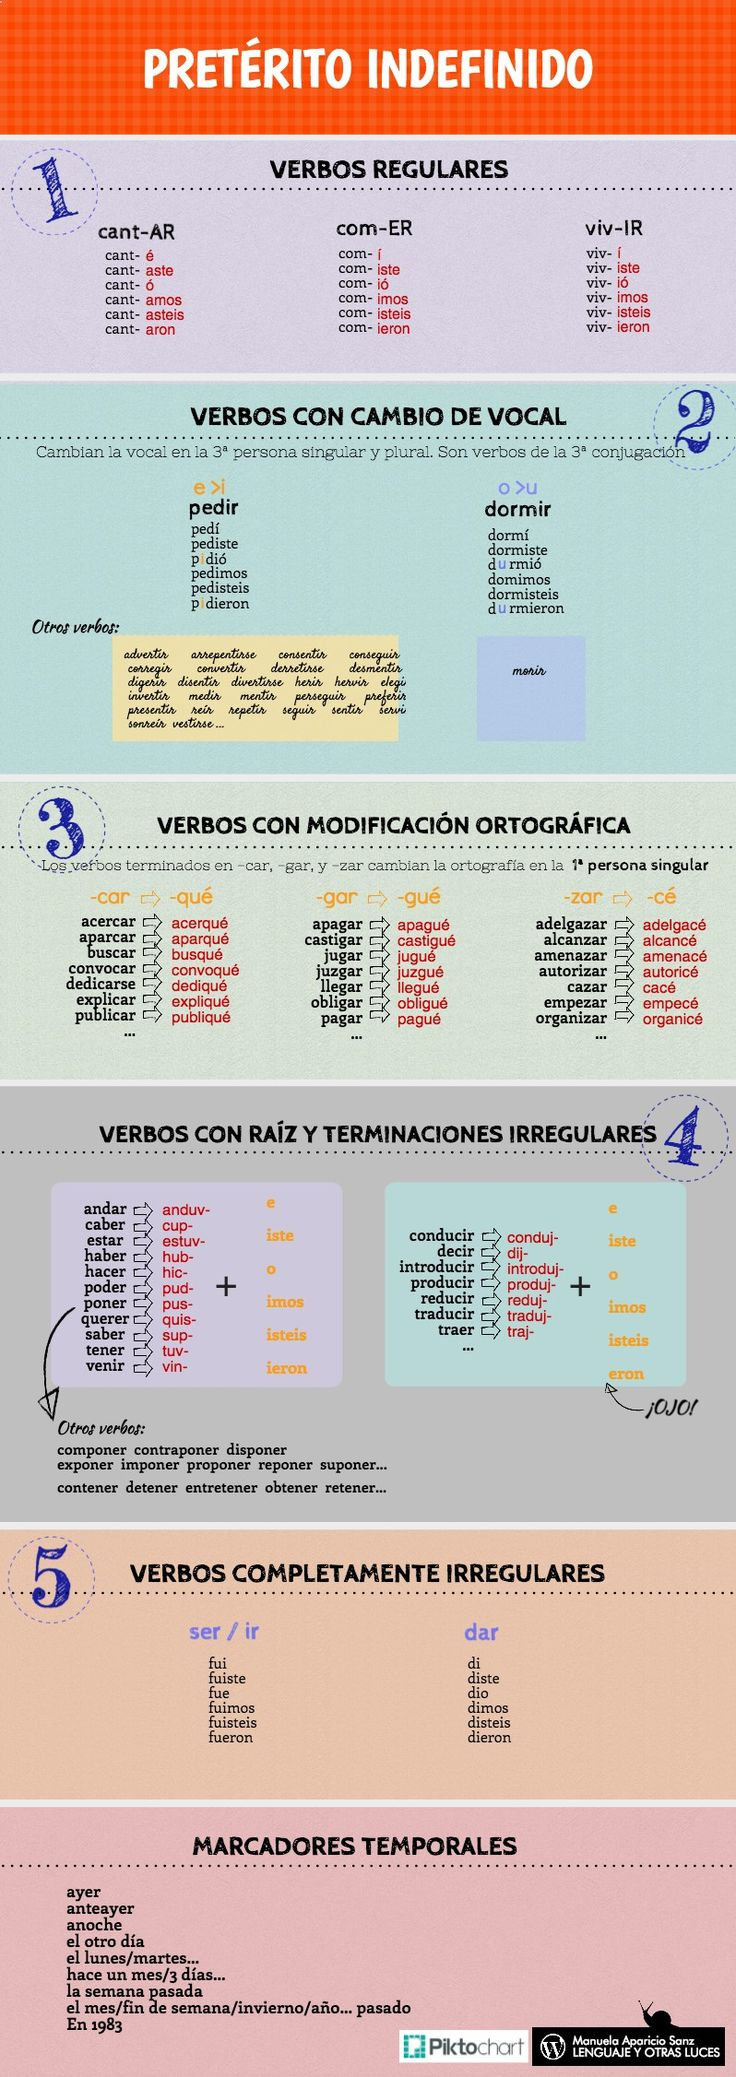 best spanish images spanish classroom spanish  tanto in spanish slang essay used like what did you say essay